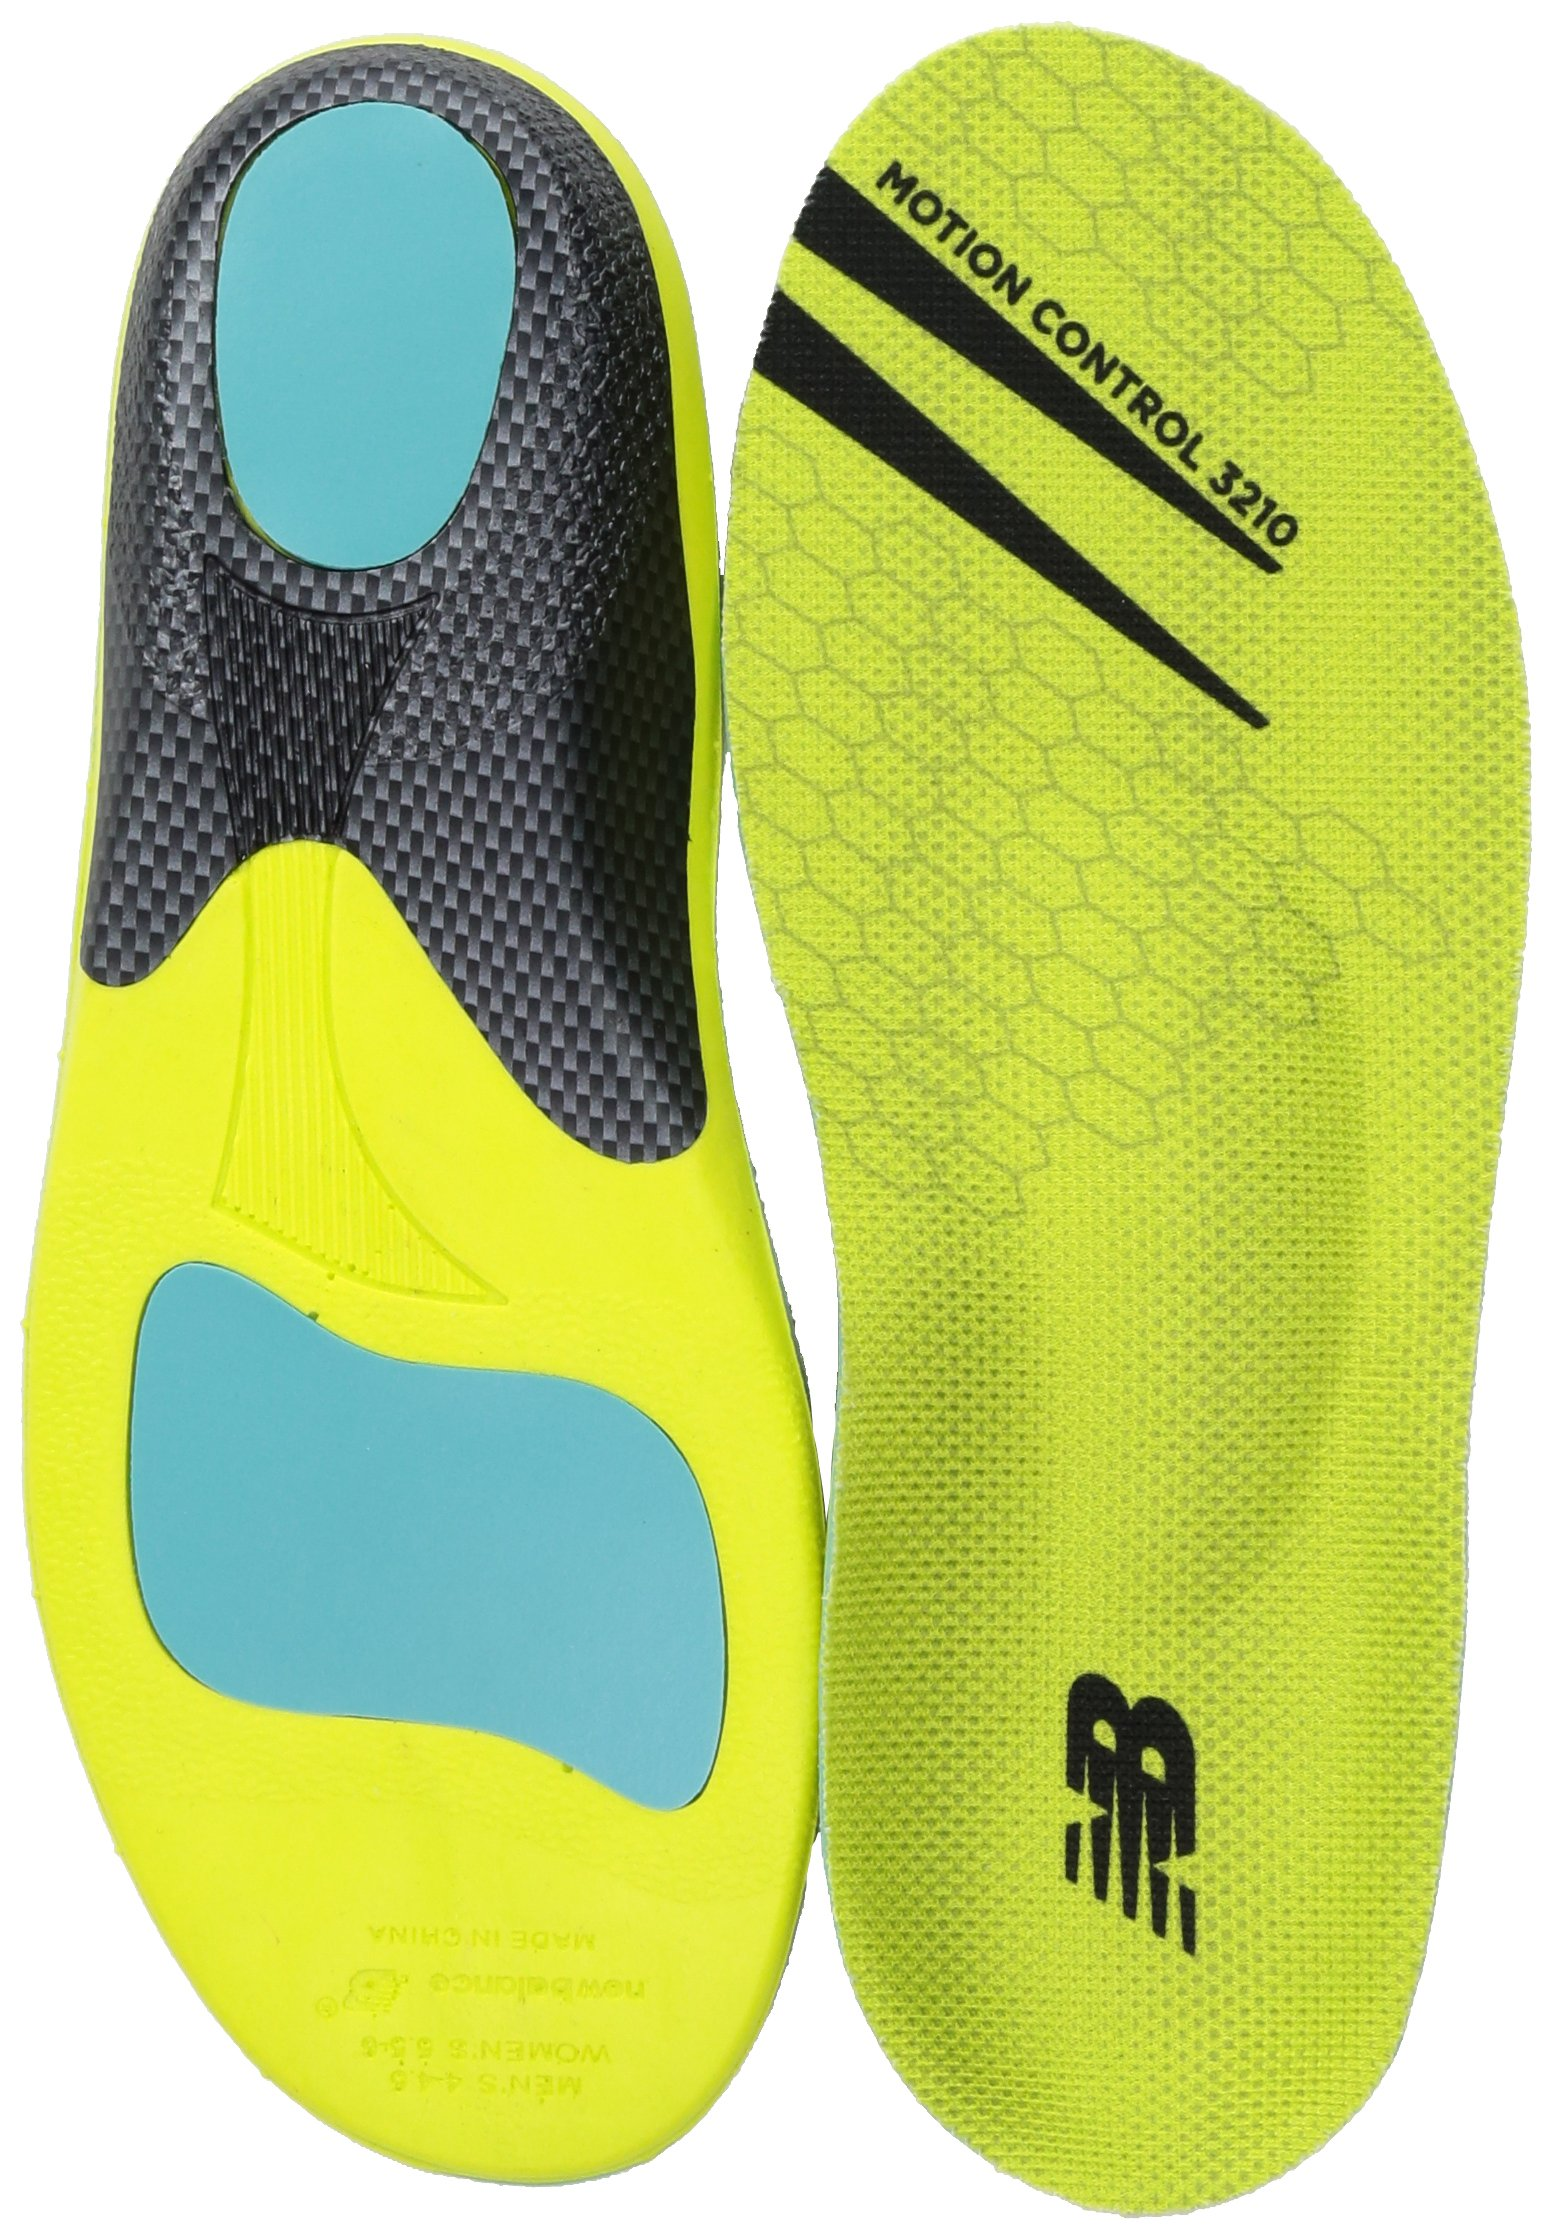 New Balance Insoles 3210 Motion Control Insole Shoe, neon green Medium/M 10.10.5, W 11.5-12 D US